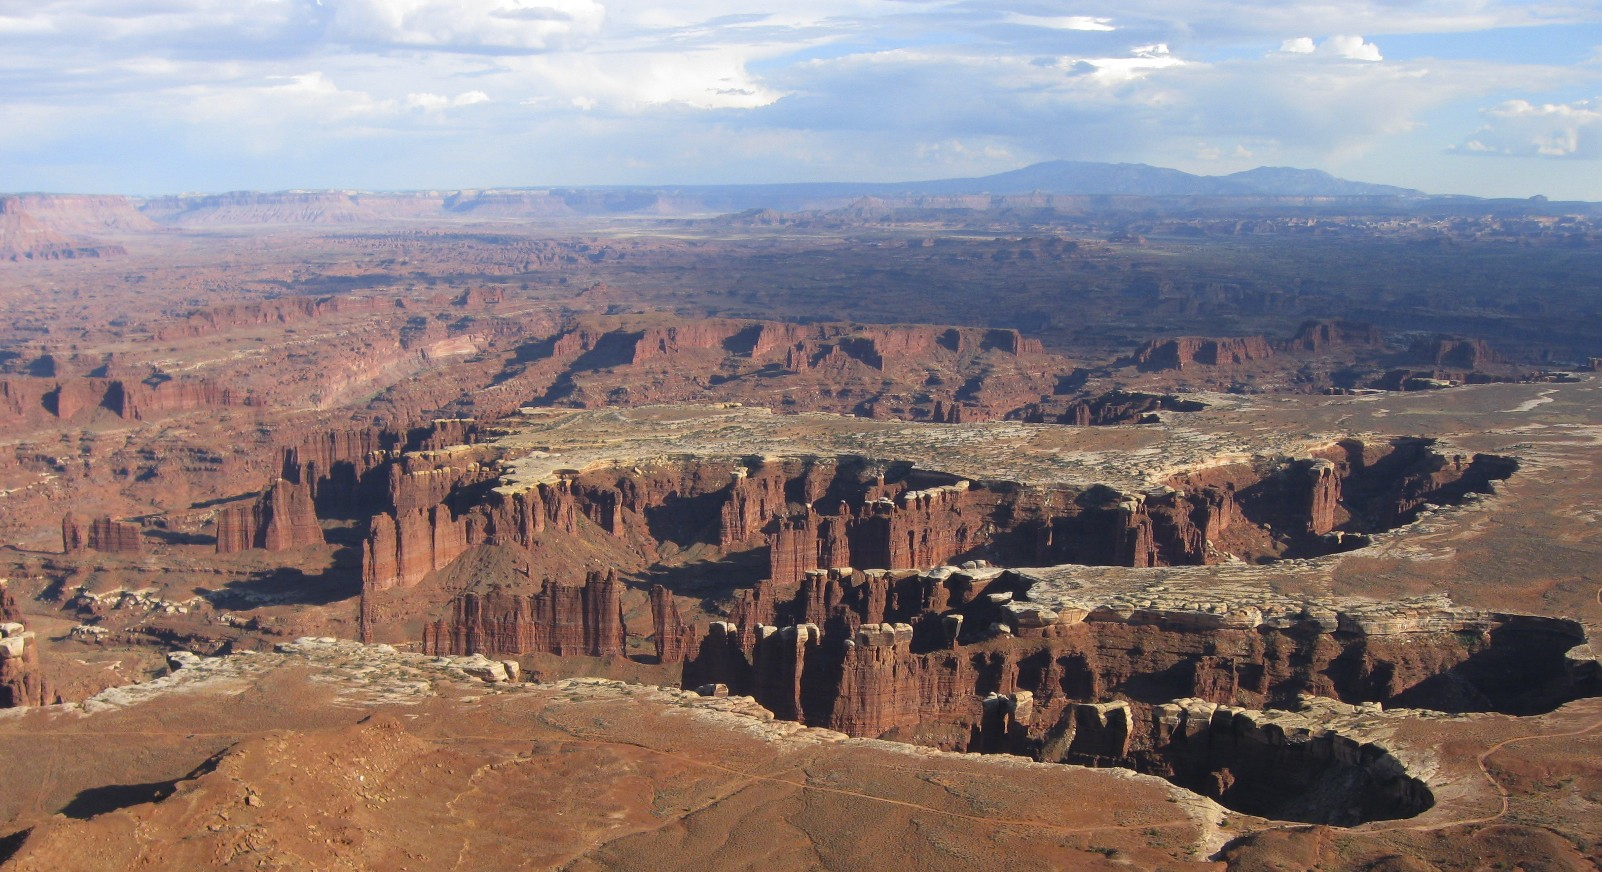 The Fingers from the road to the Dead Horse Canyon near Moab, Utah